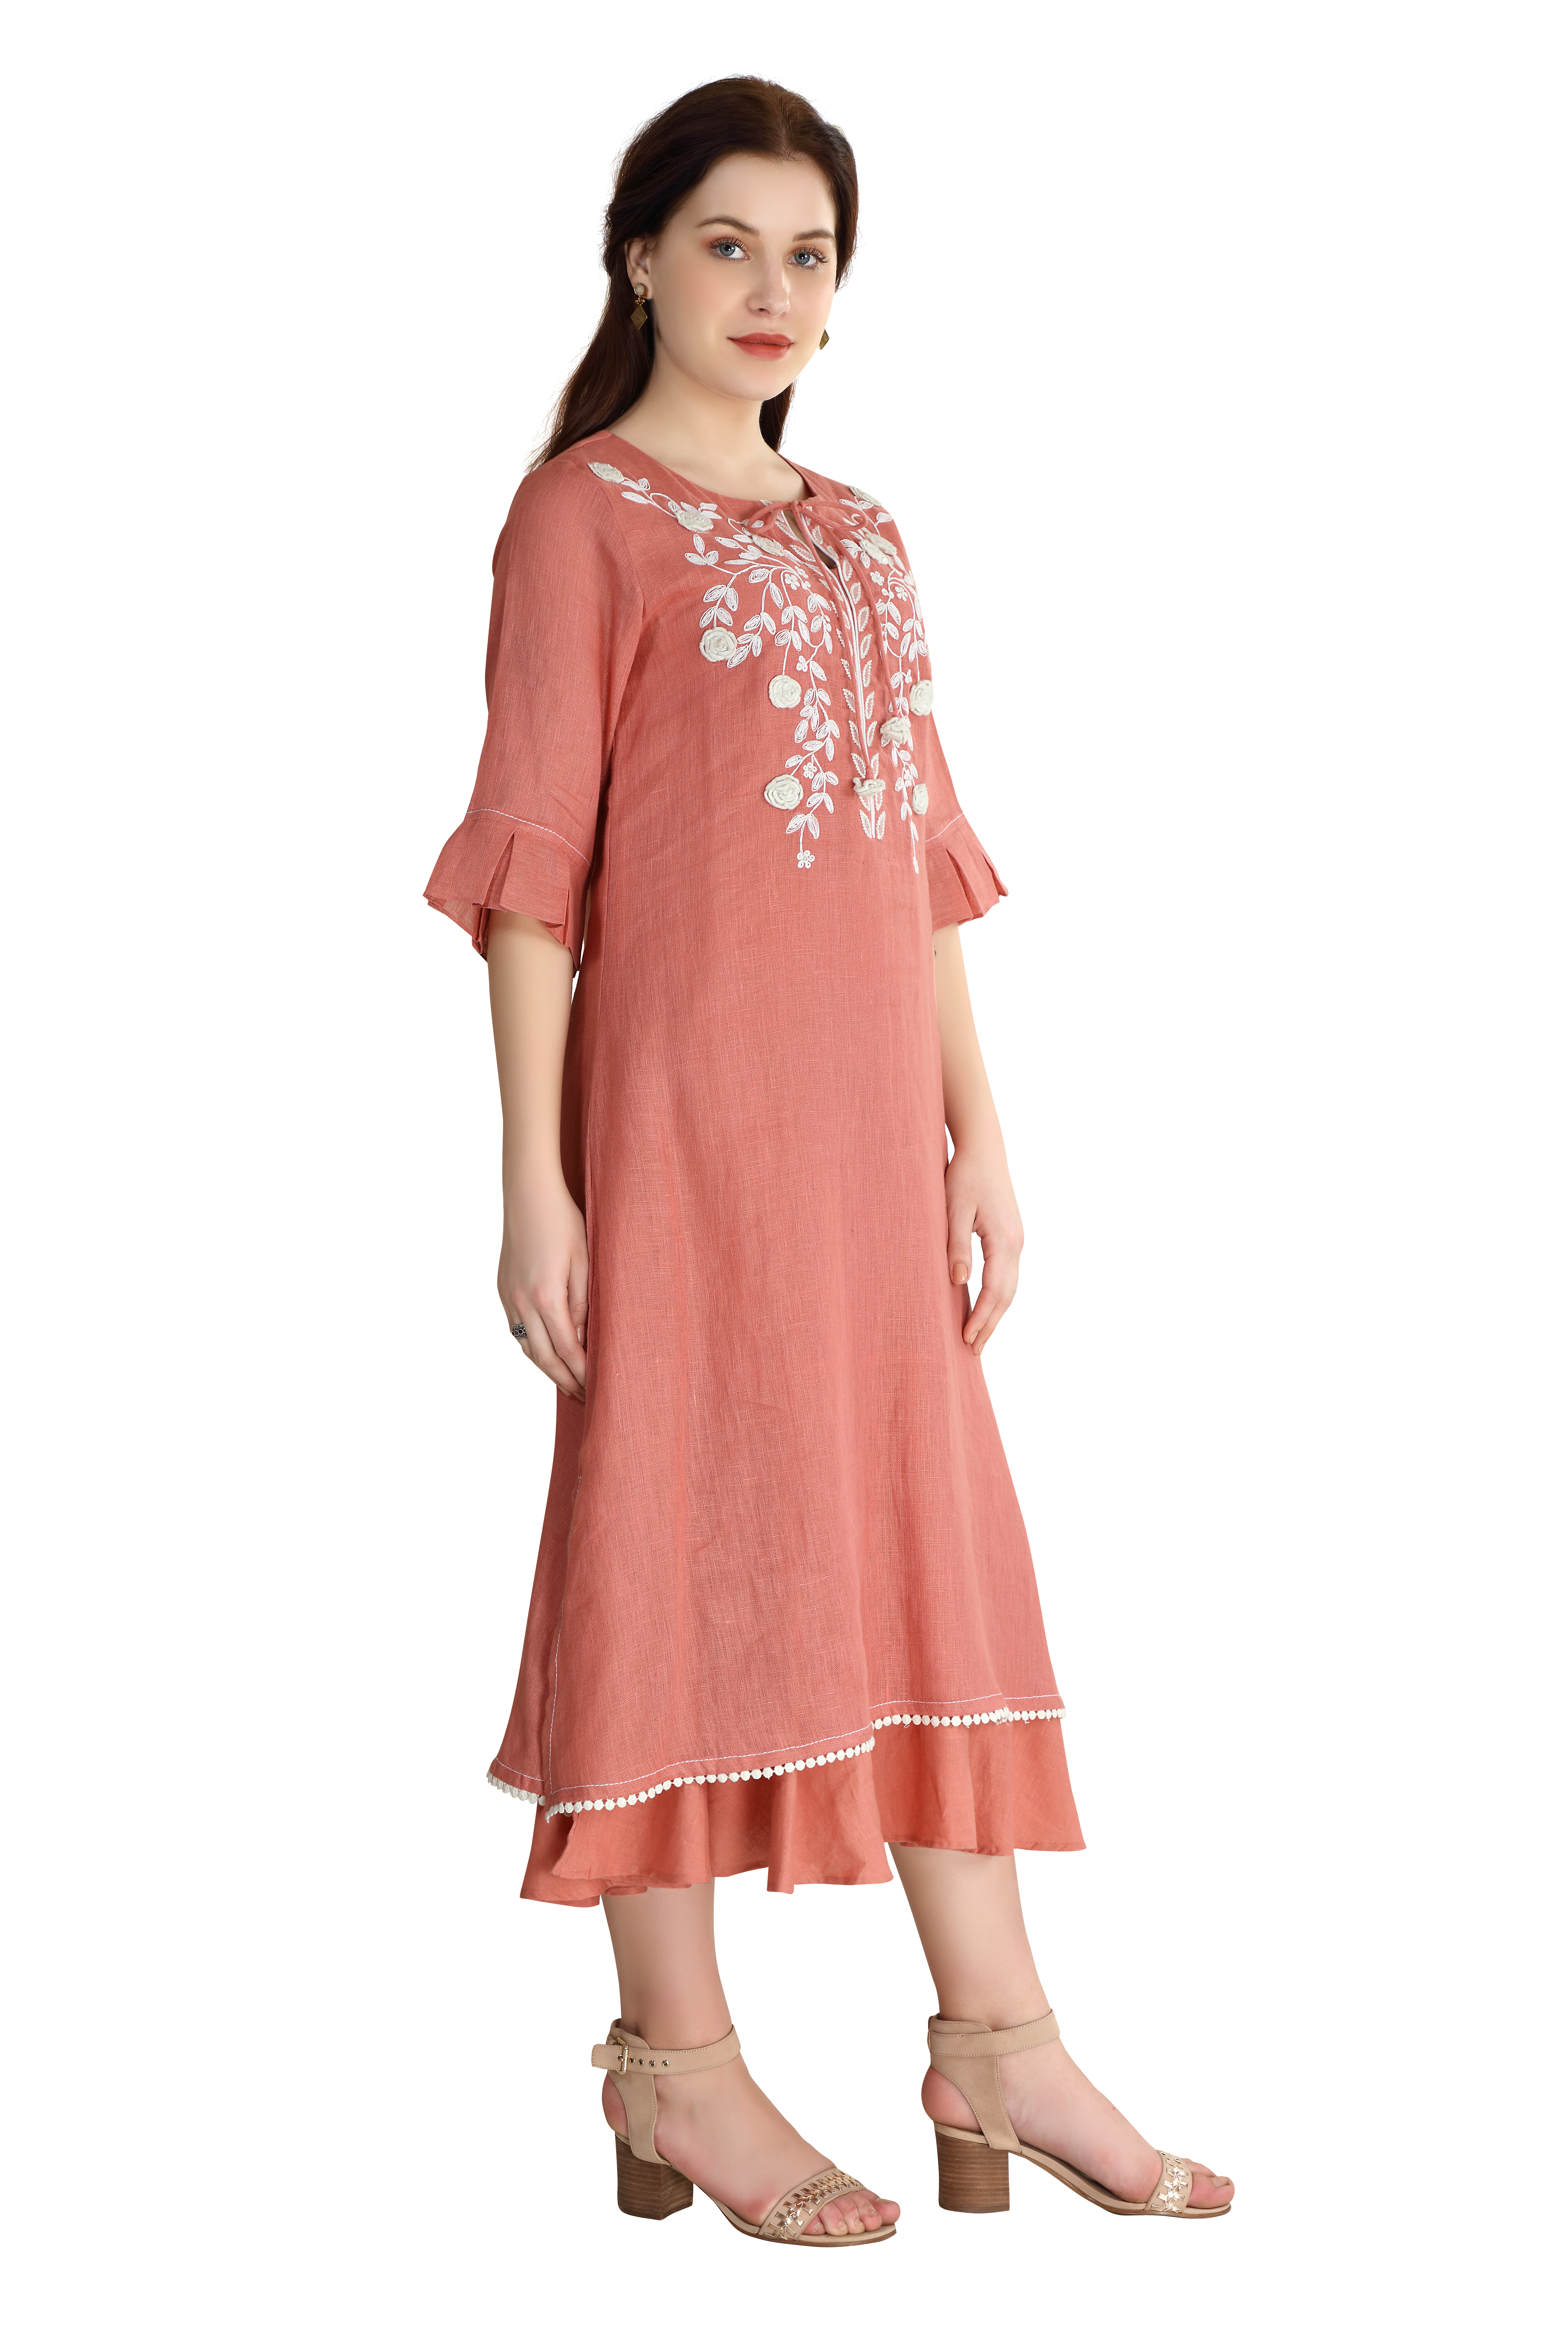 202017 The Dusty Rose Embroidered Linen Dress XS - Dusty Rose (XS,Dusty Rose)